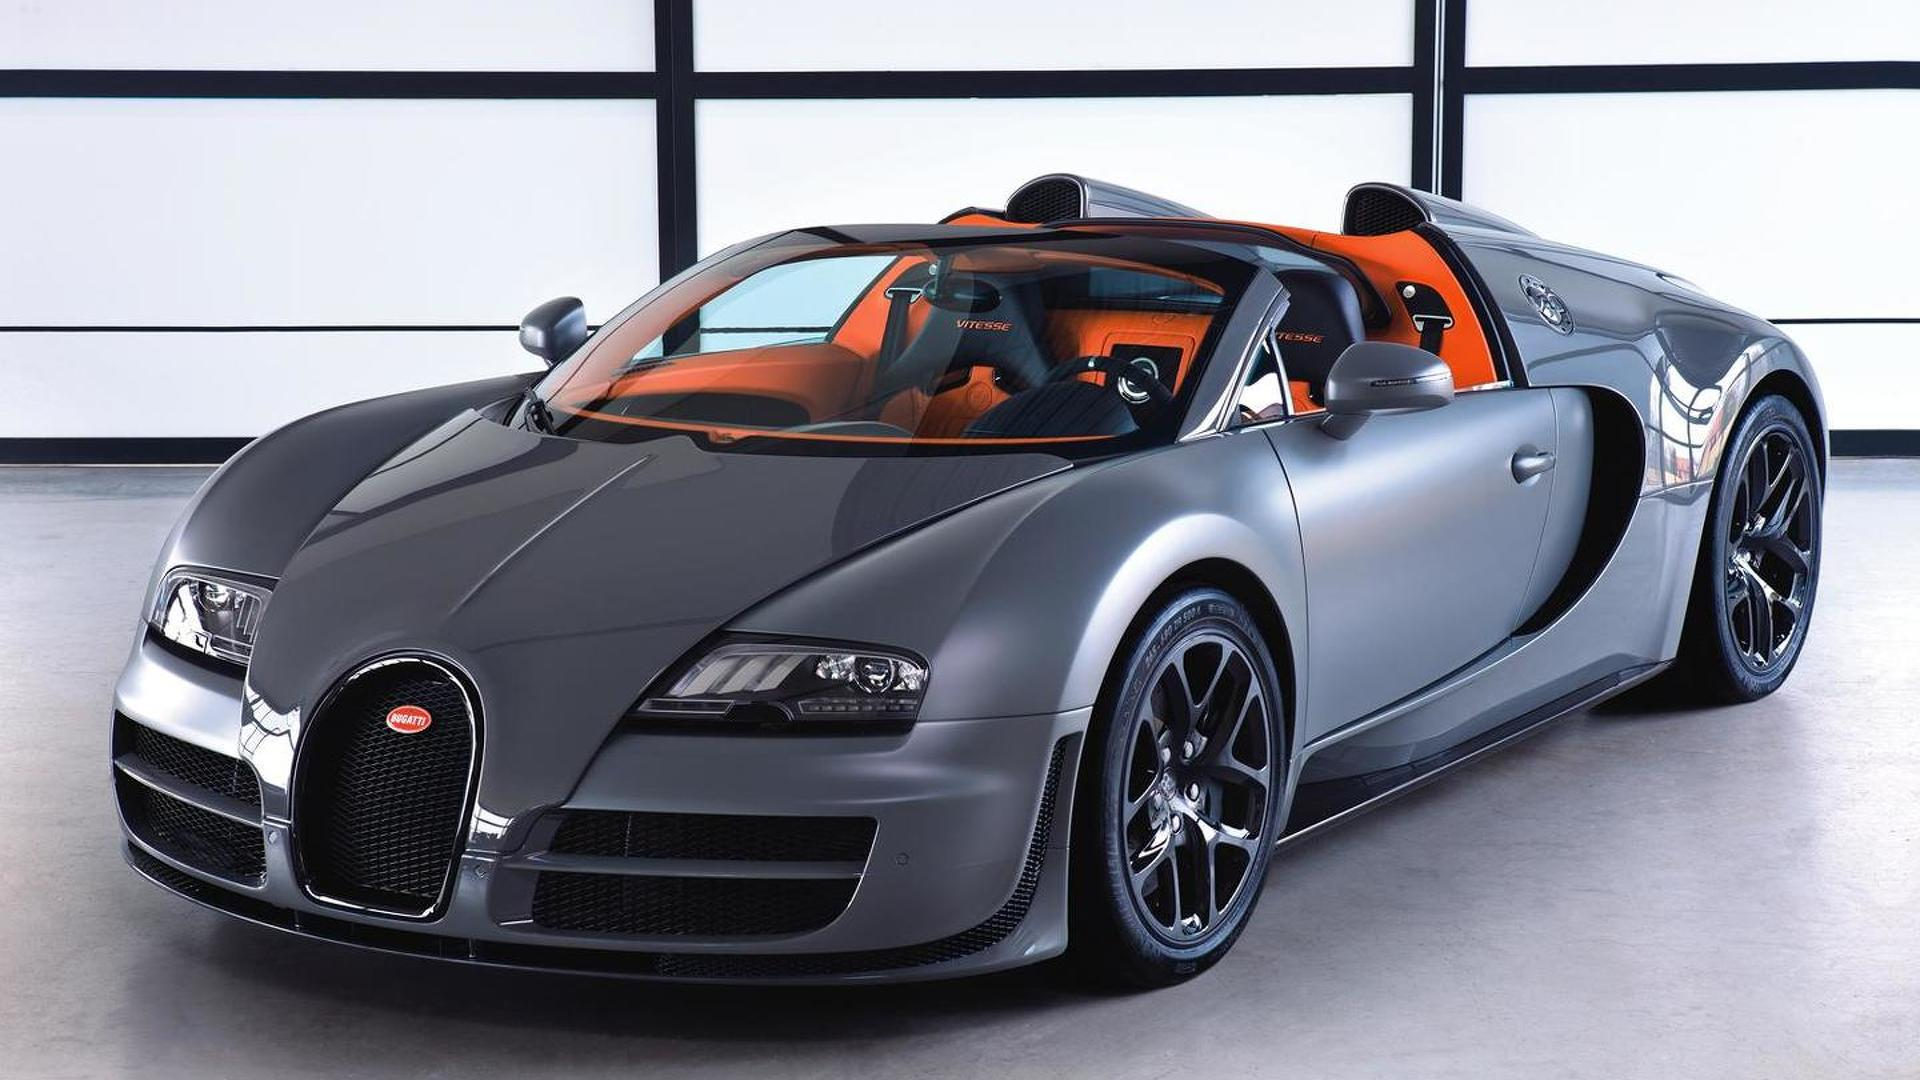 Bugatti Veyron Grand Sport Vitesse - new images & full specs released